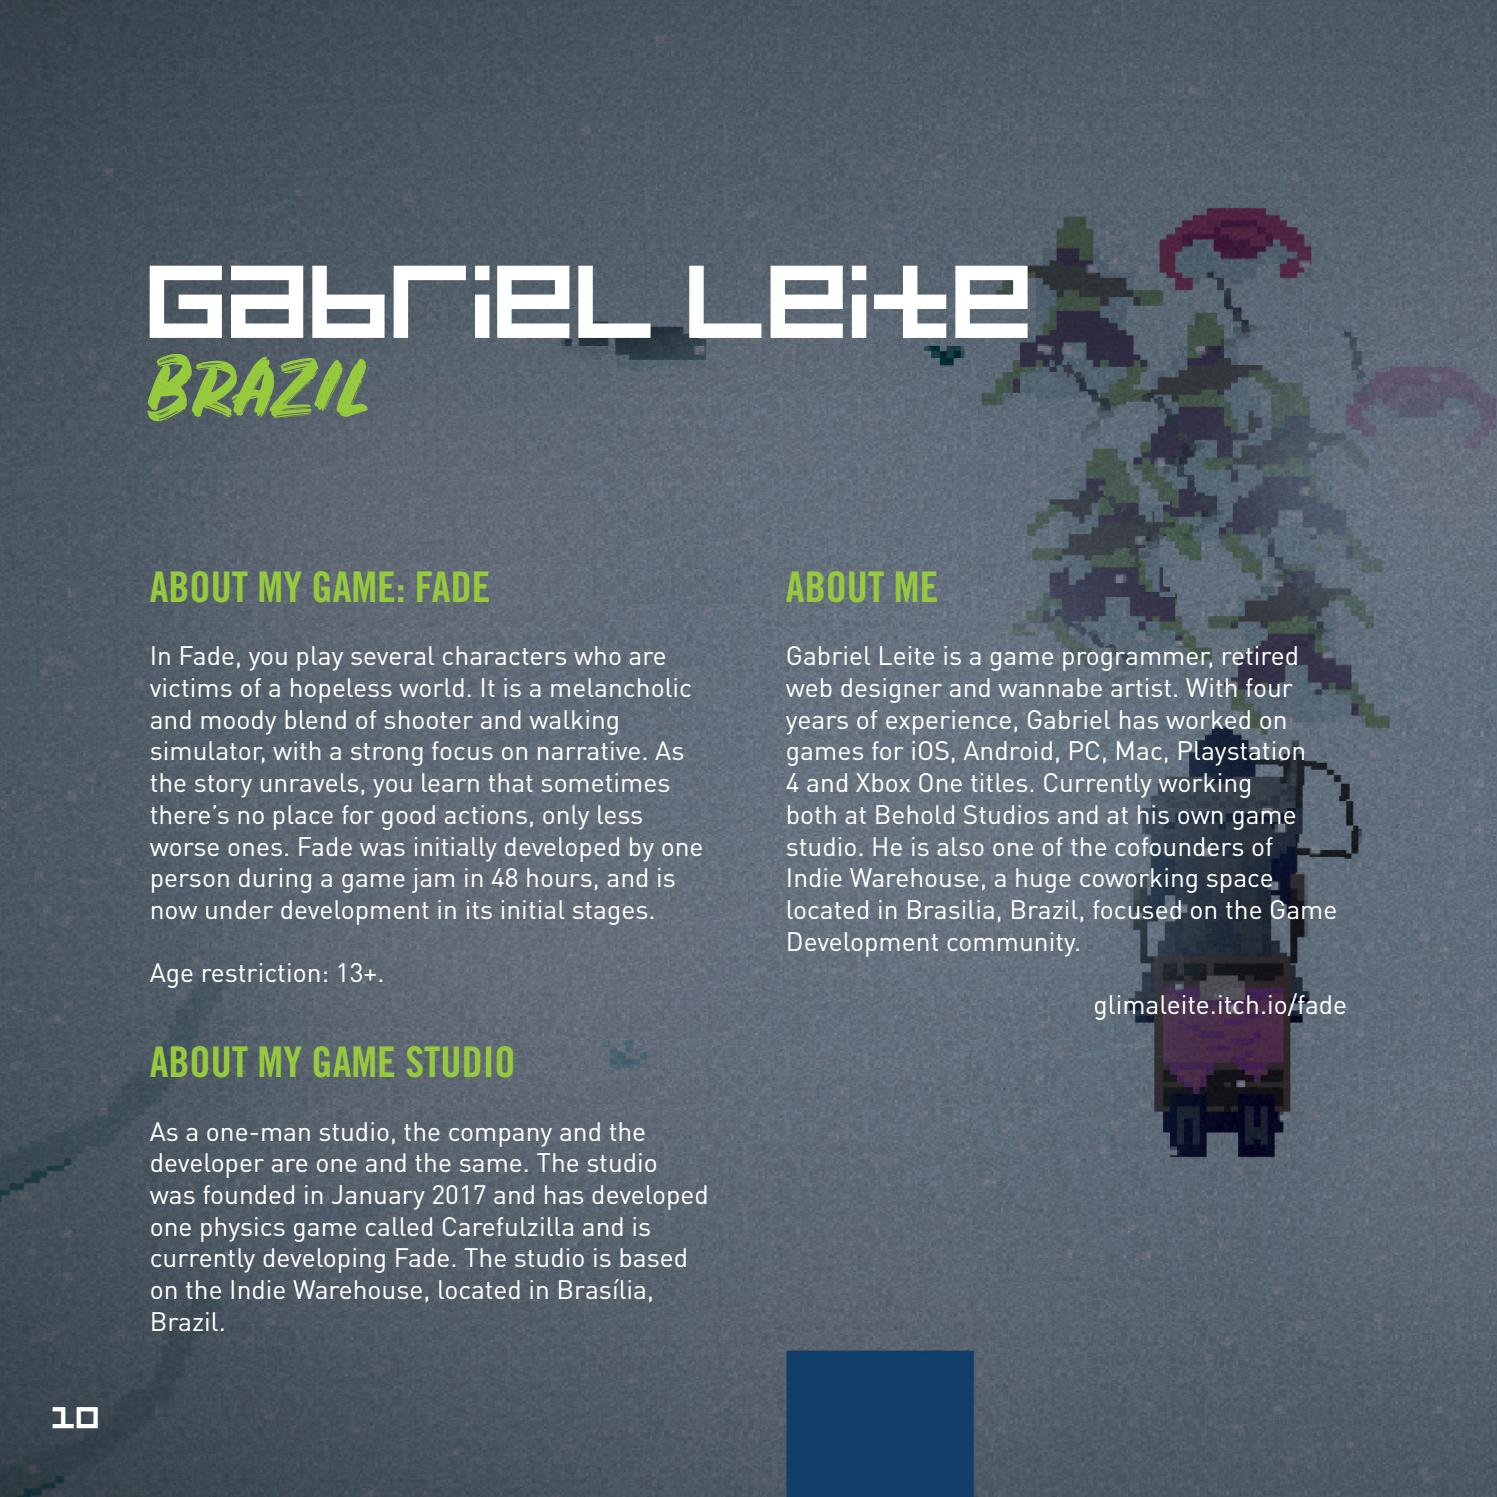 Game Mixer South Africa by Goethe-Institut South Africa - issuu